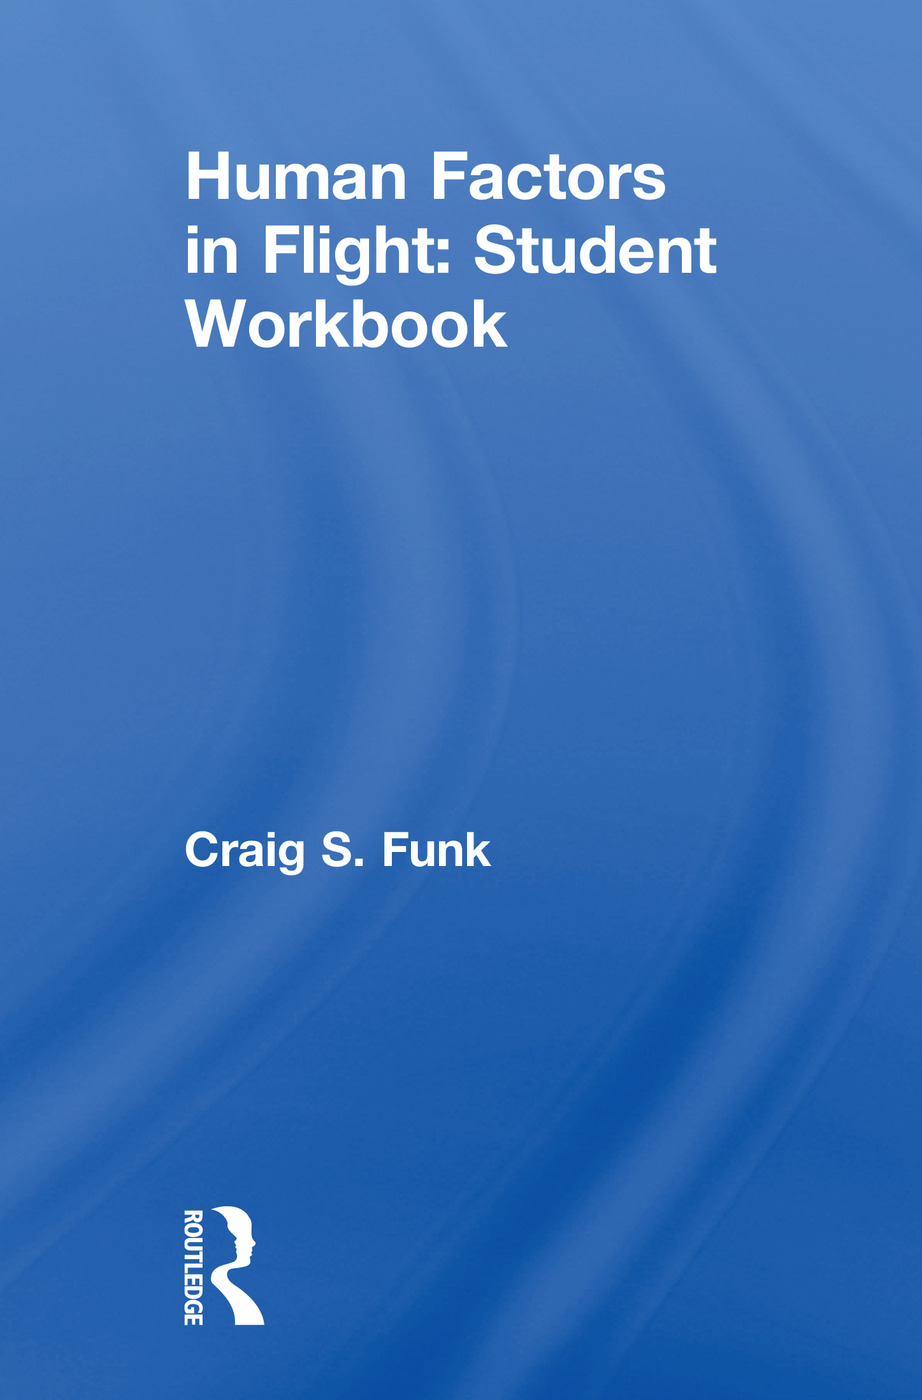 Human Factors in Flight: Student Workbook: 1st Edition (Paperback) book cover